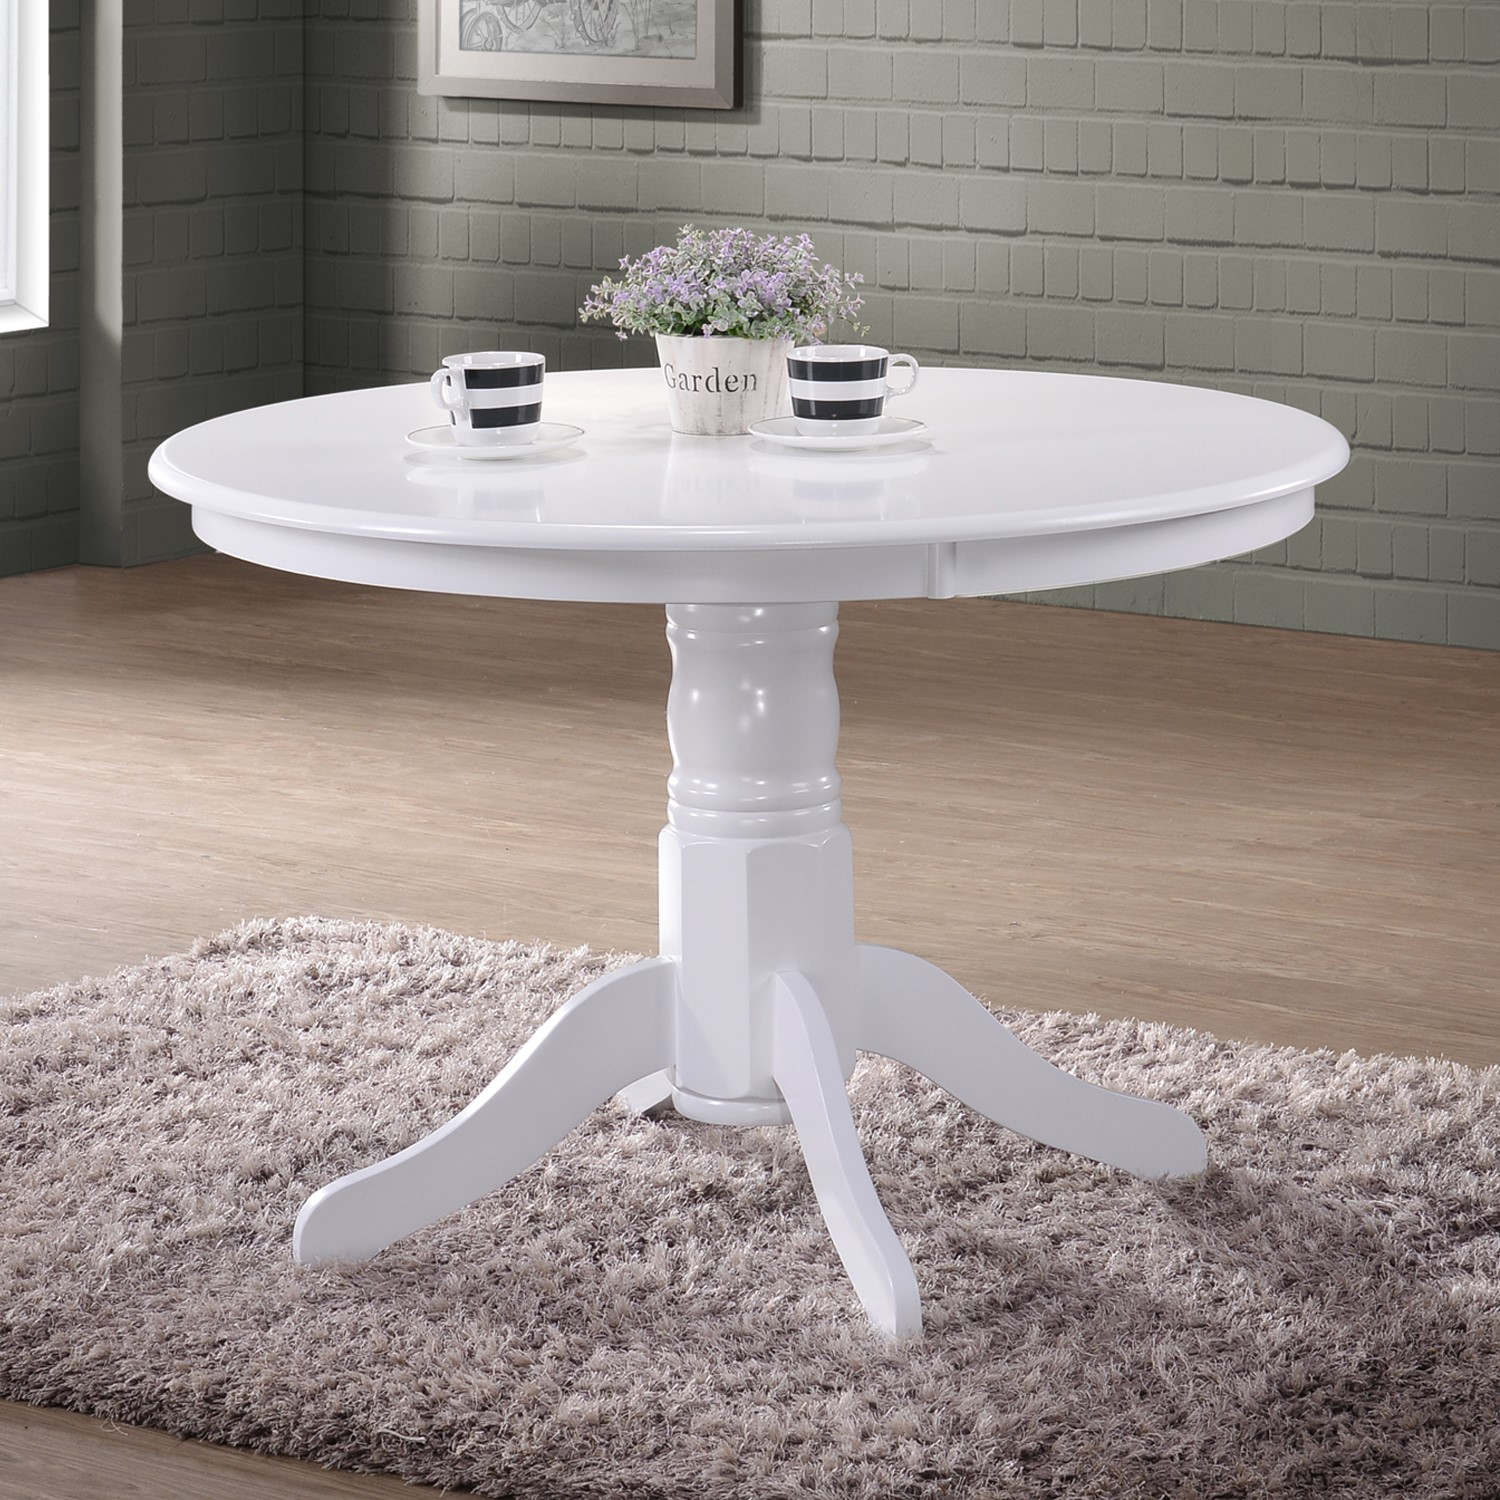 Grade A1 Rhode Island White Round Pedestal Dining Table 4 Seater